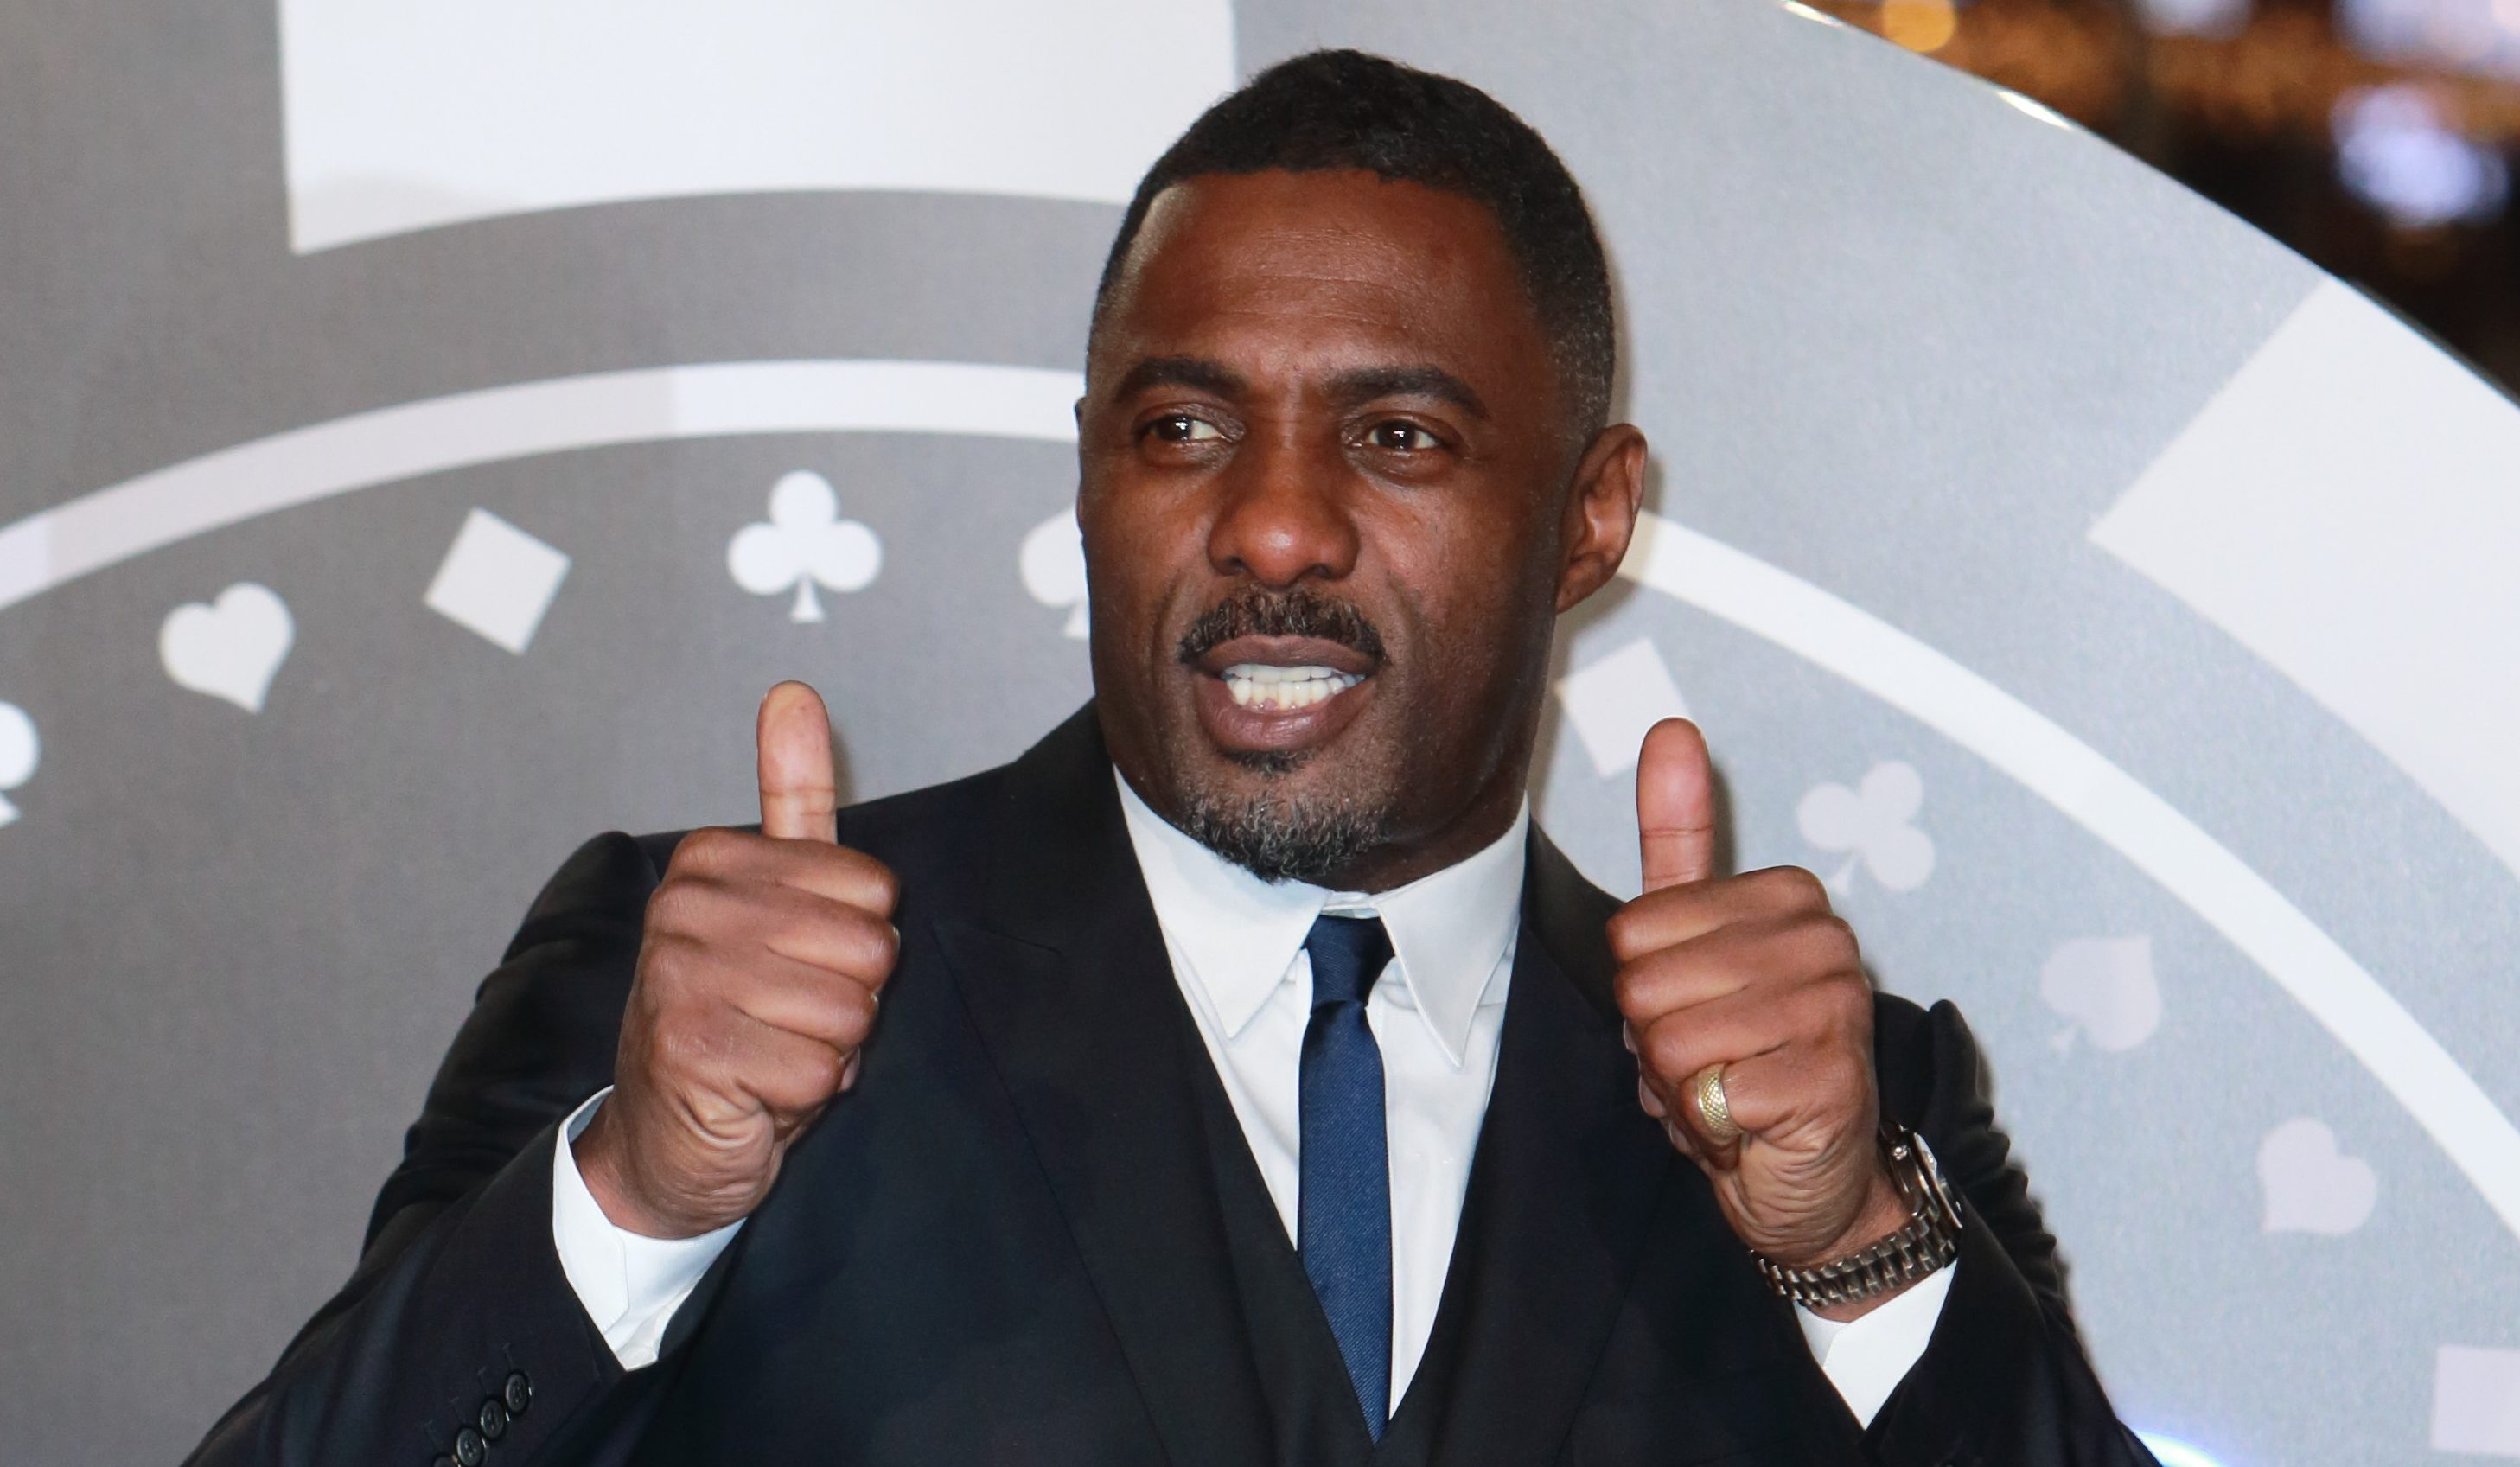 Idris Elba proposes to girlfriend onstage at movie screening